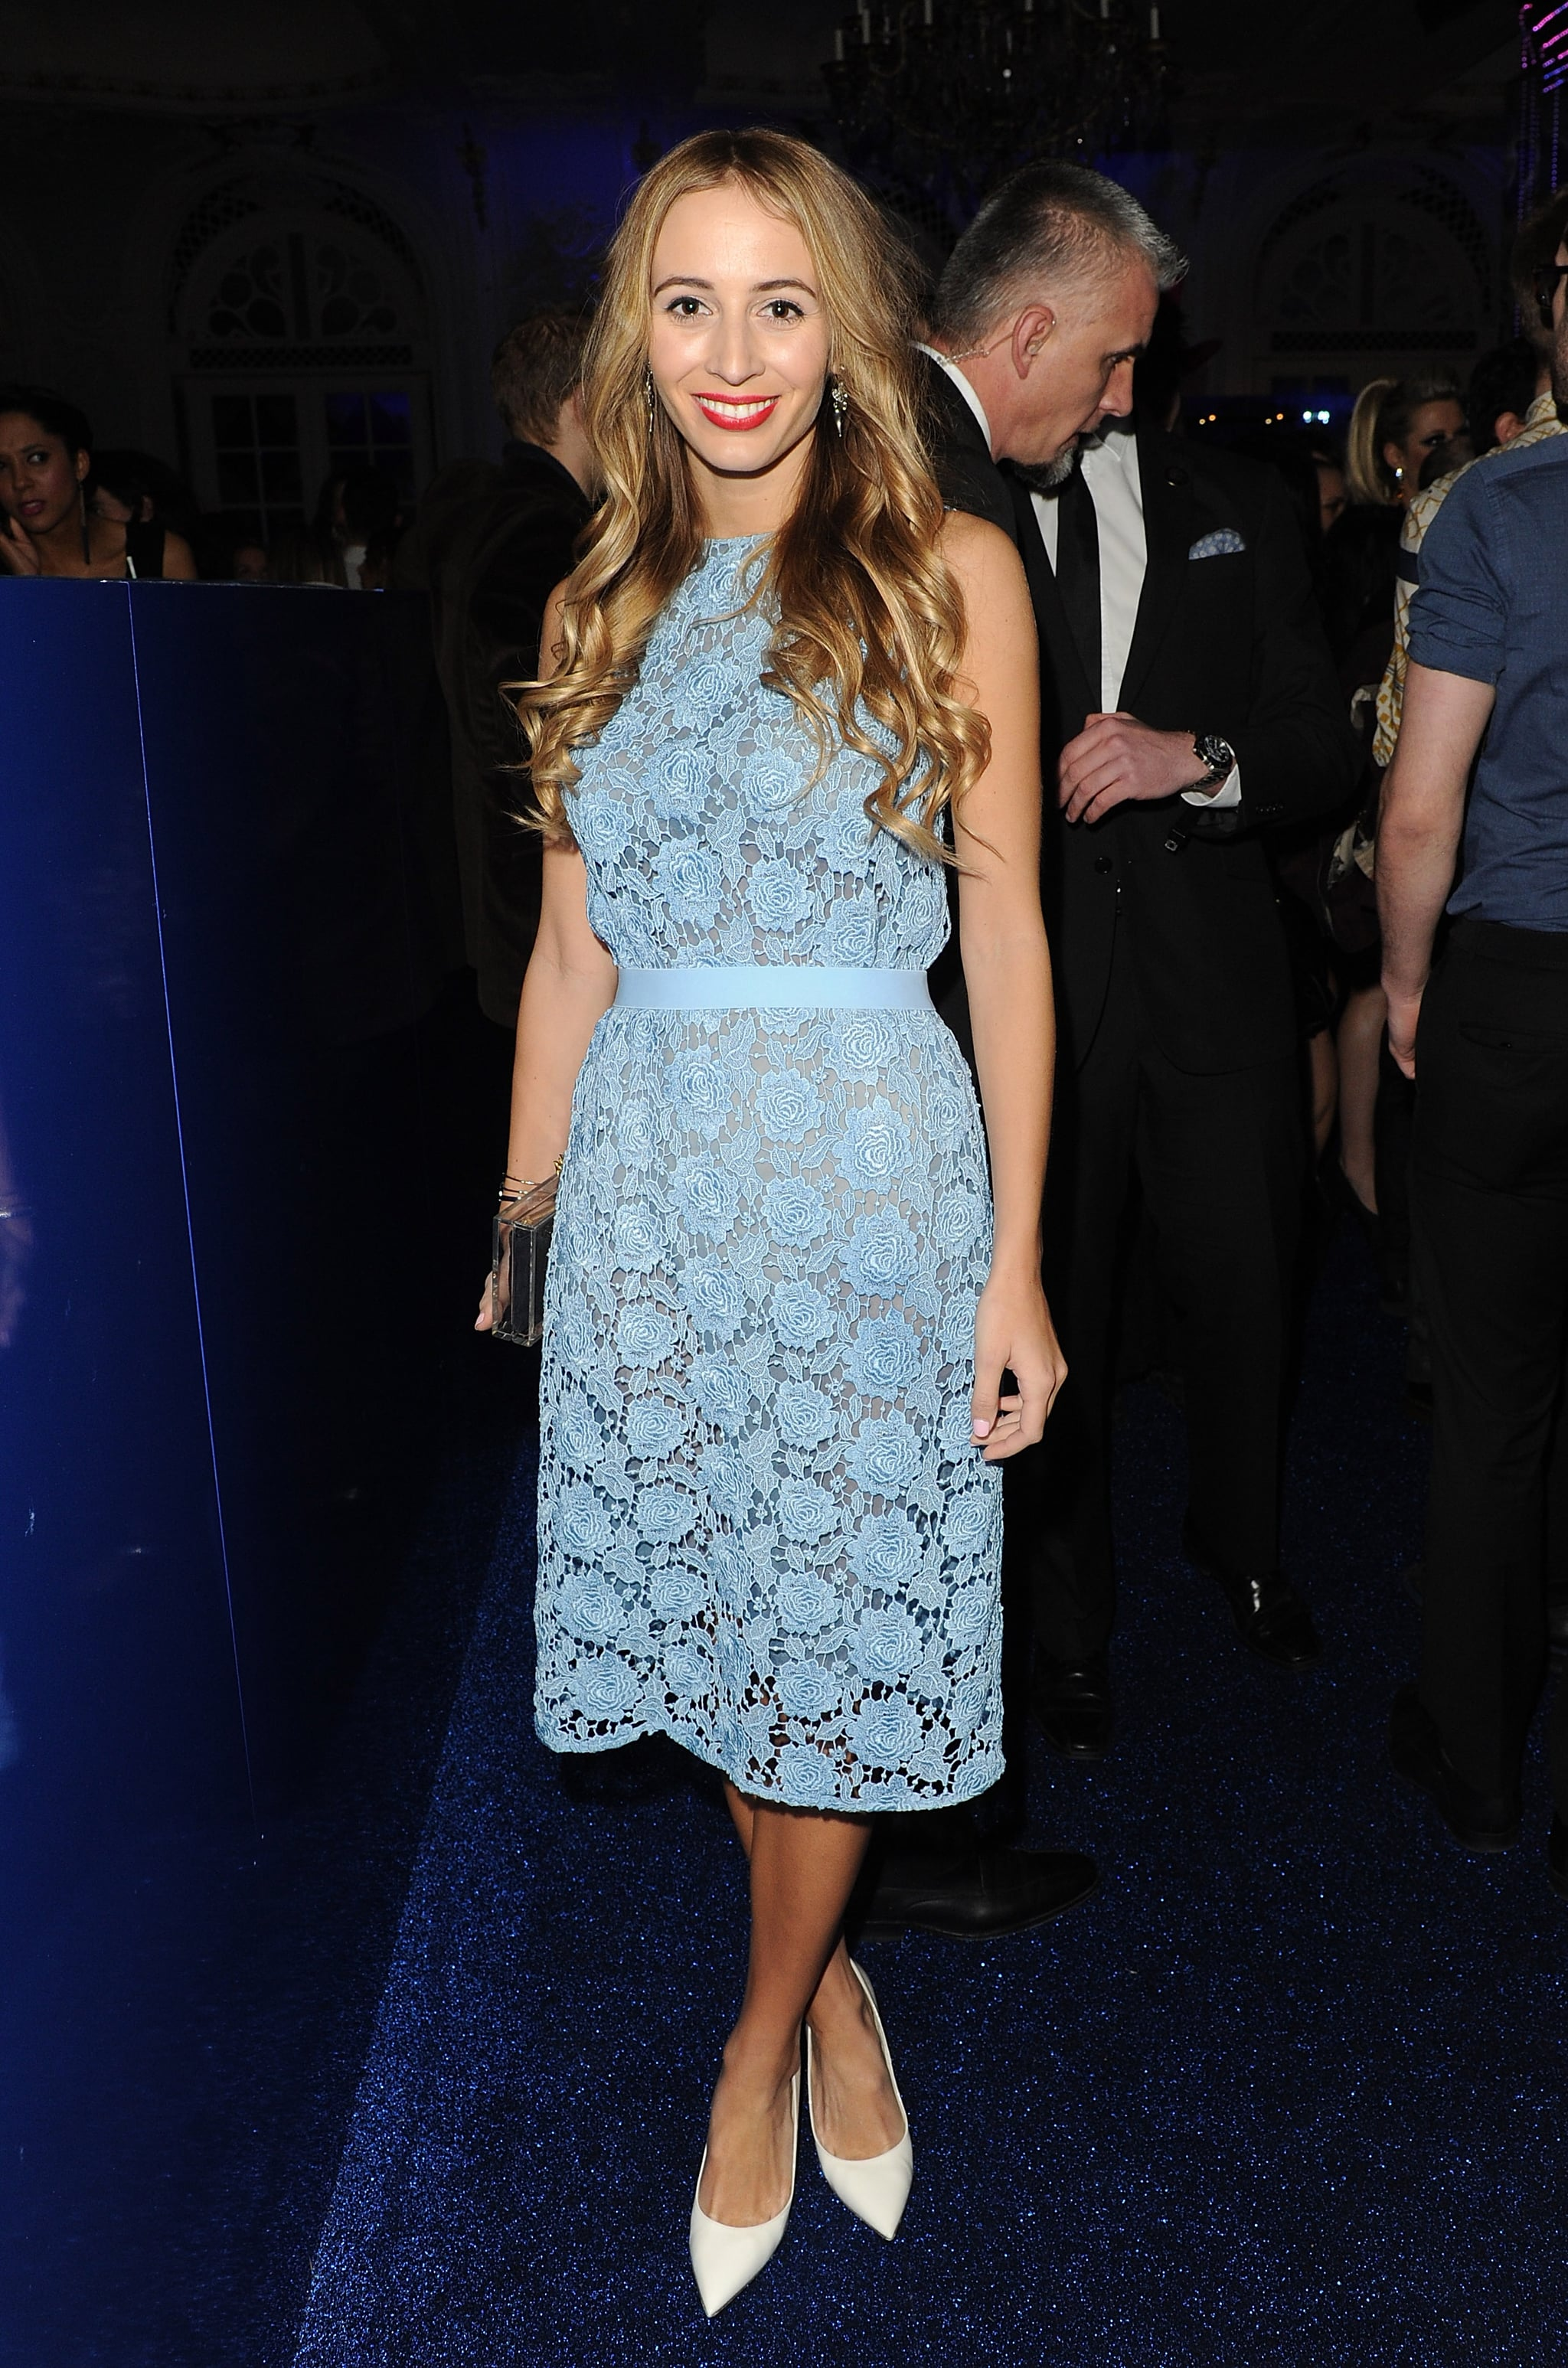 Harley Viera-Newton at the Warner Music Group's post-Brit Awards party in London.